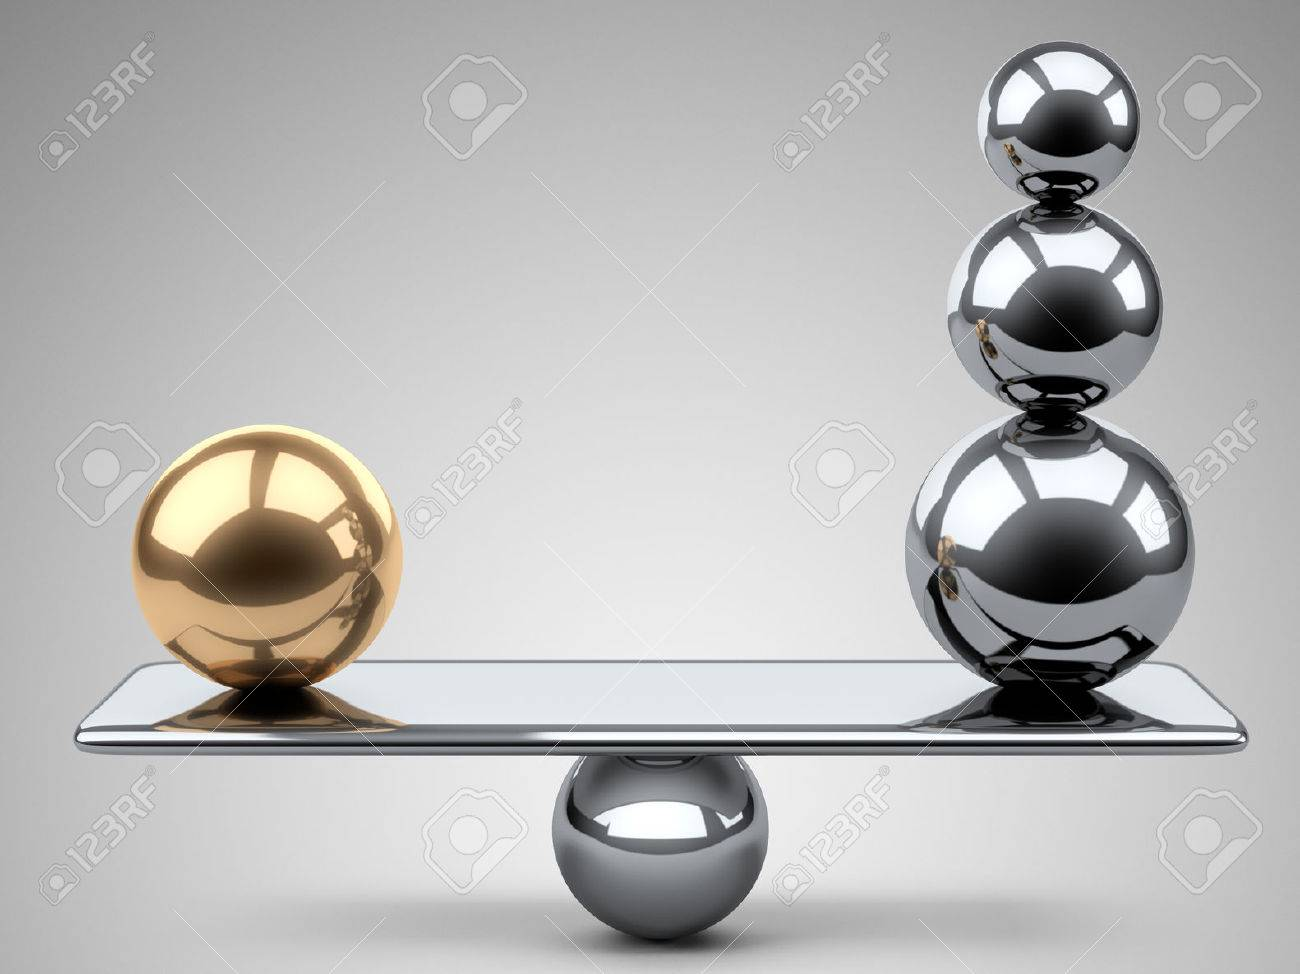 Balance between large gold and steel spheres. 3d illustration on a grey background. - 43834615